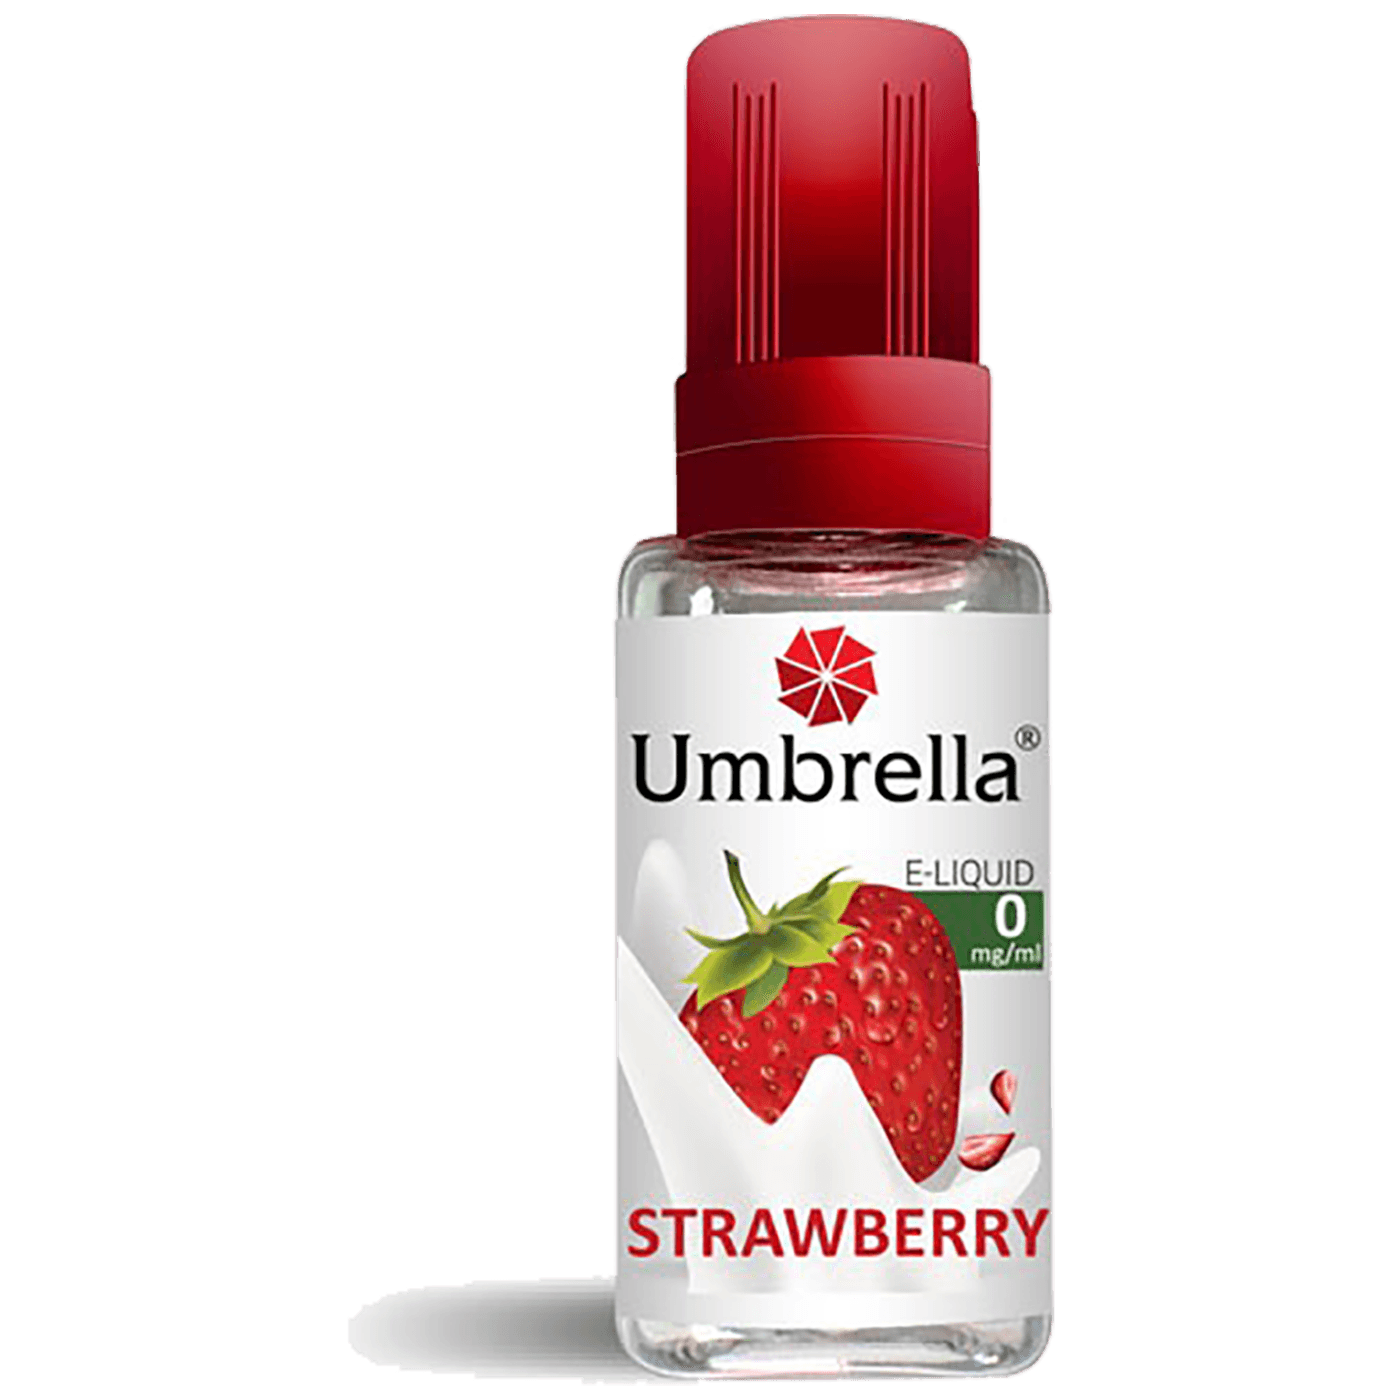 Umbrella - UMB30ml Jagoda 4.5 mg